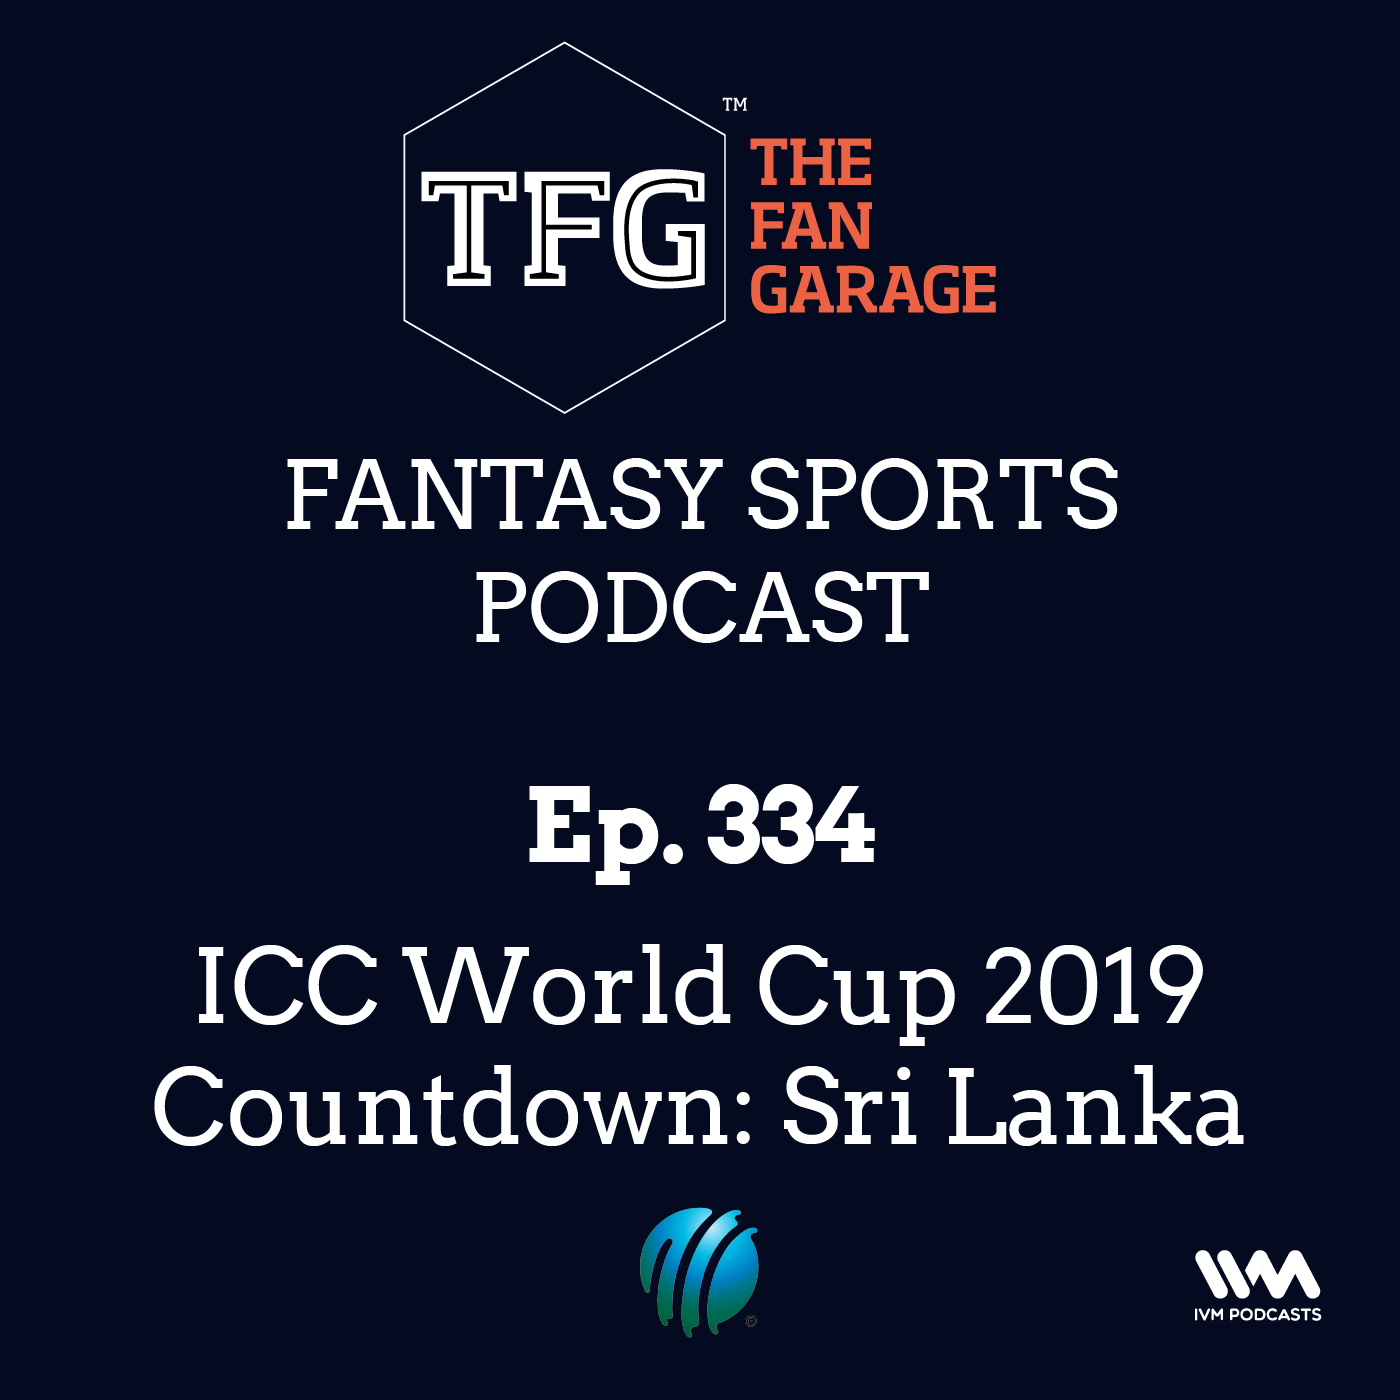 TFG Fantasy Sports Podcast Ep. 334: ICC World Cup 2019 Countdown: Sri Lanka